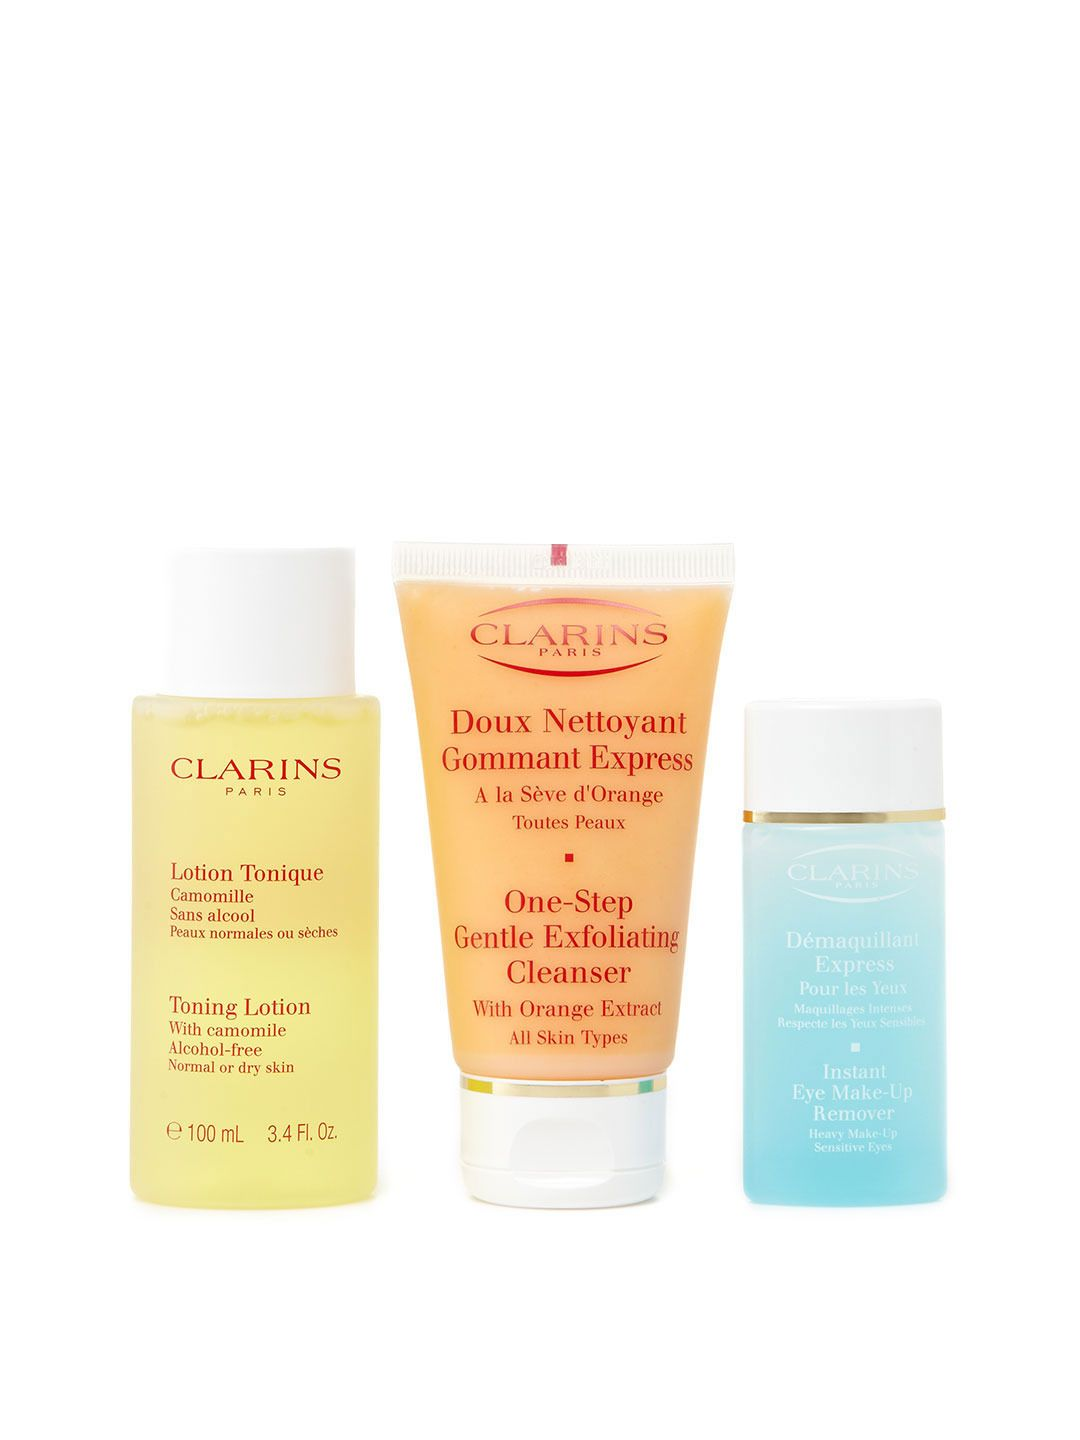 Clarins Cleansing Trip for Normal/Dry Skin :: $19, Retail $28 | Gilt.com :: Includes deluxe travel sizes of Toning Lotion, One Step Gentle Exfoliating Cleanser & travel size of Instant Eye Makeup Remover. | #clarins